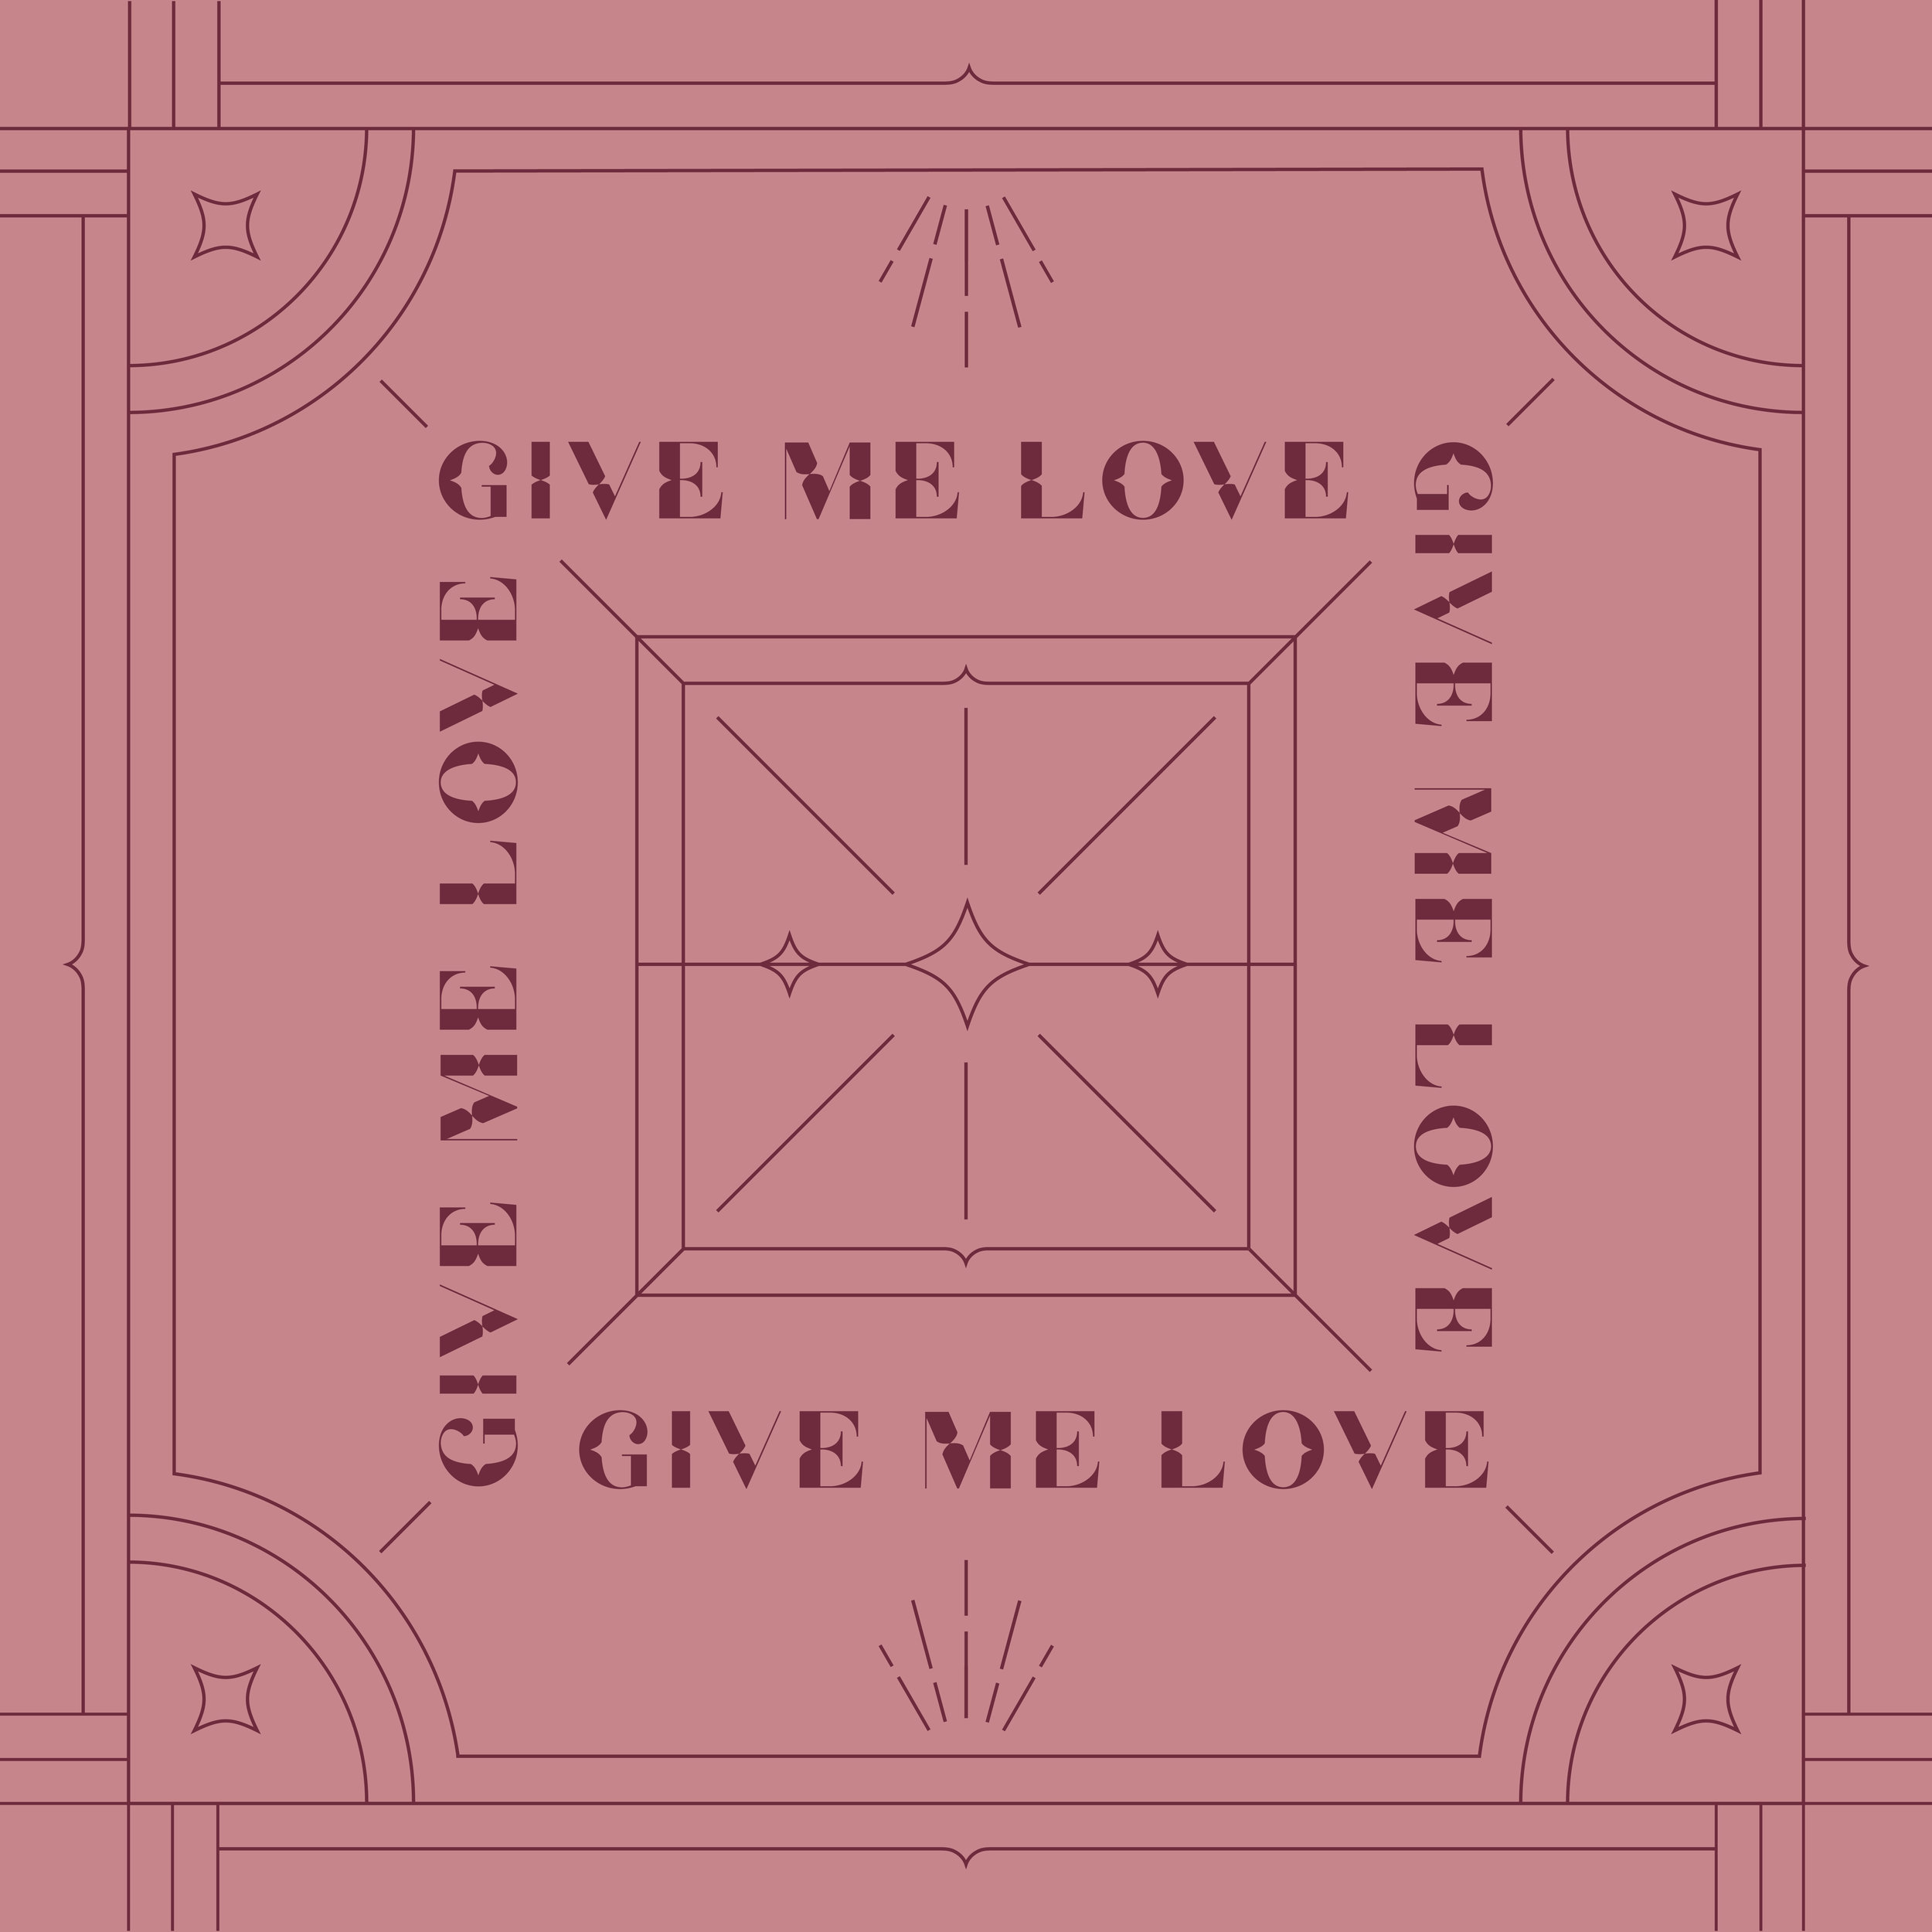 Clarity-Candle-Playlist-Cover-Design-05-Give-Me-Love.jpg